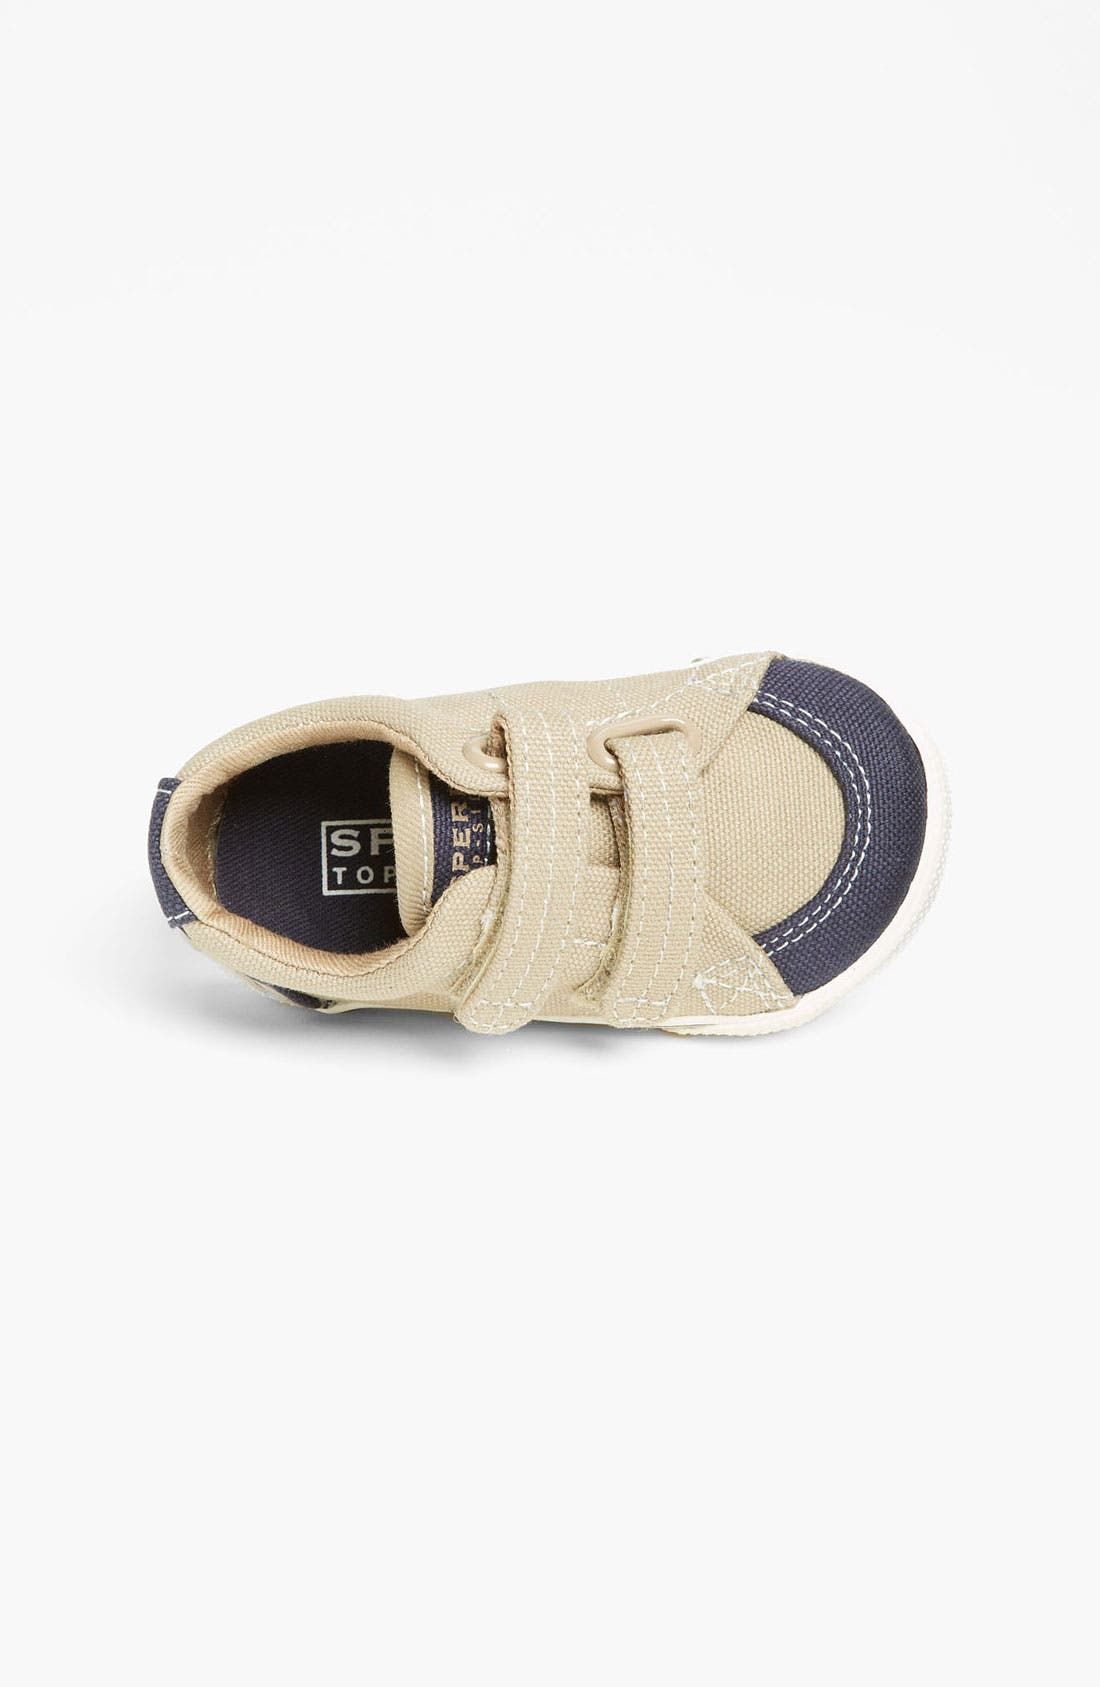 Alternate Image 3  - Sperry Top-Sider® 'Halyard' Crib Shoe (Baby)